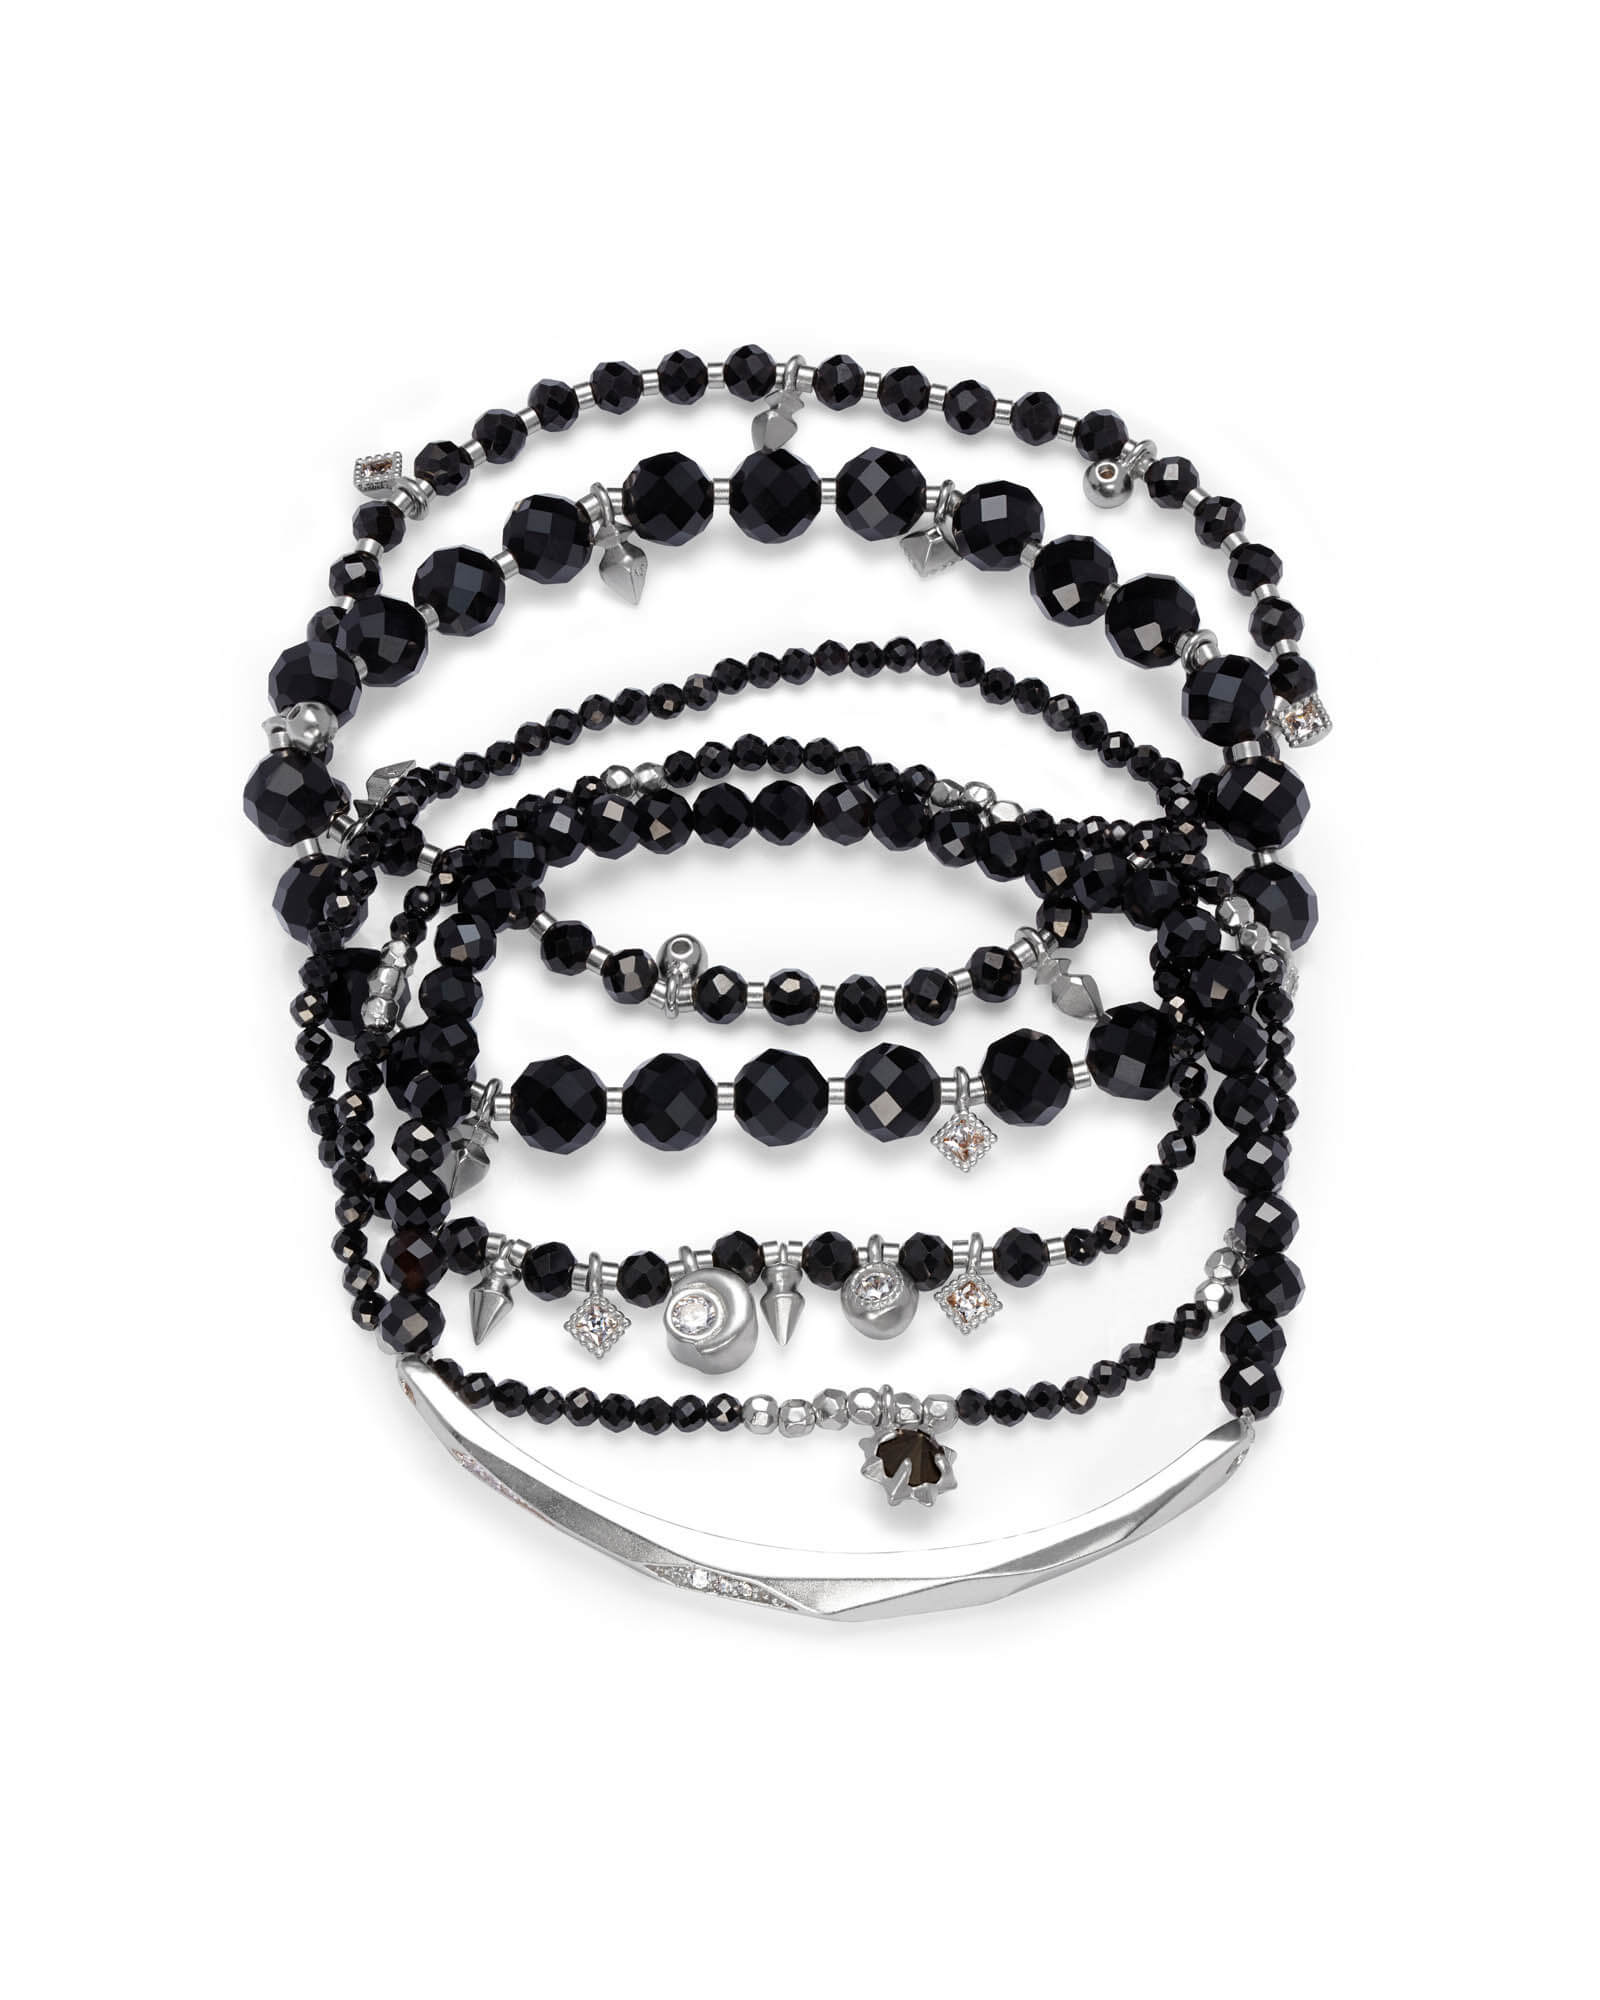 Supak Silver Beaded Bracelet Set in Black Opaque Glass